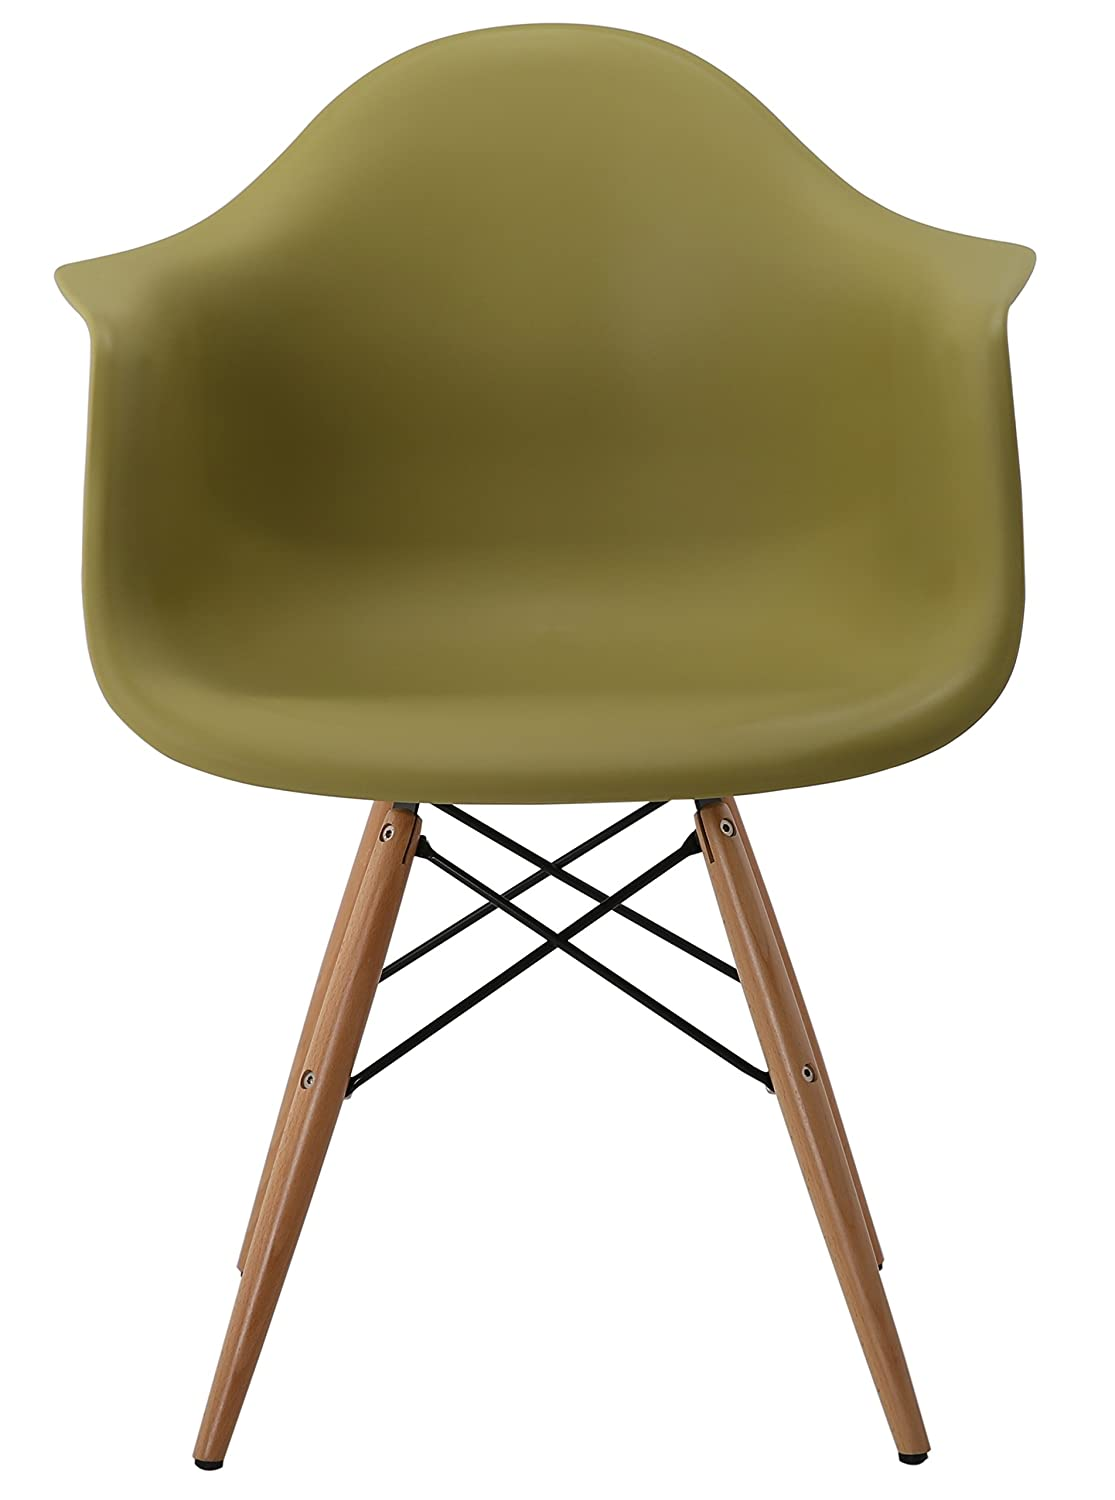 Eames Inspire DAW Dining Plastic Chairs Lounge Armchair Office ...